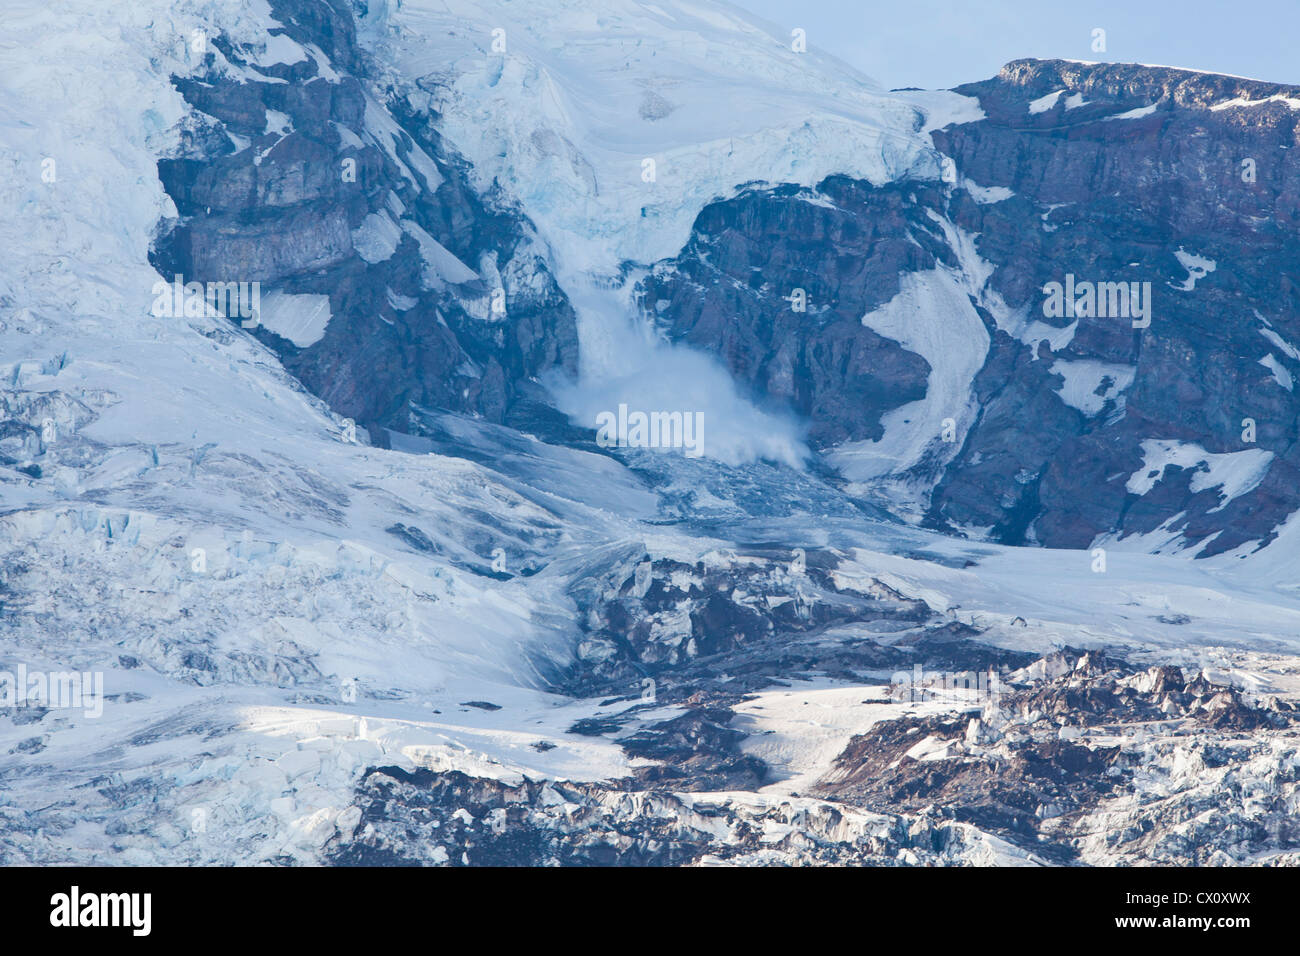 An ice fall / avalanche on the Nisqually glacier, Mount Rainier, Washington, USA. - Stock Image